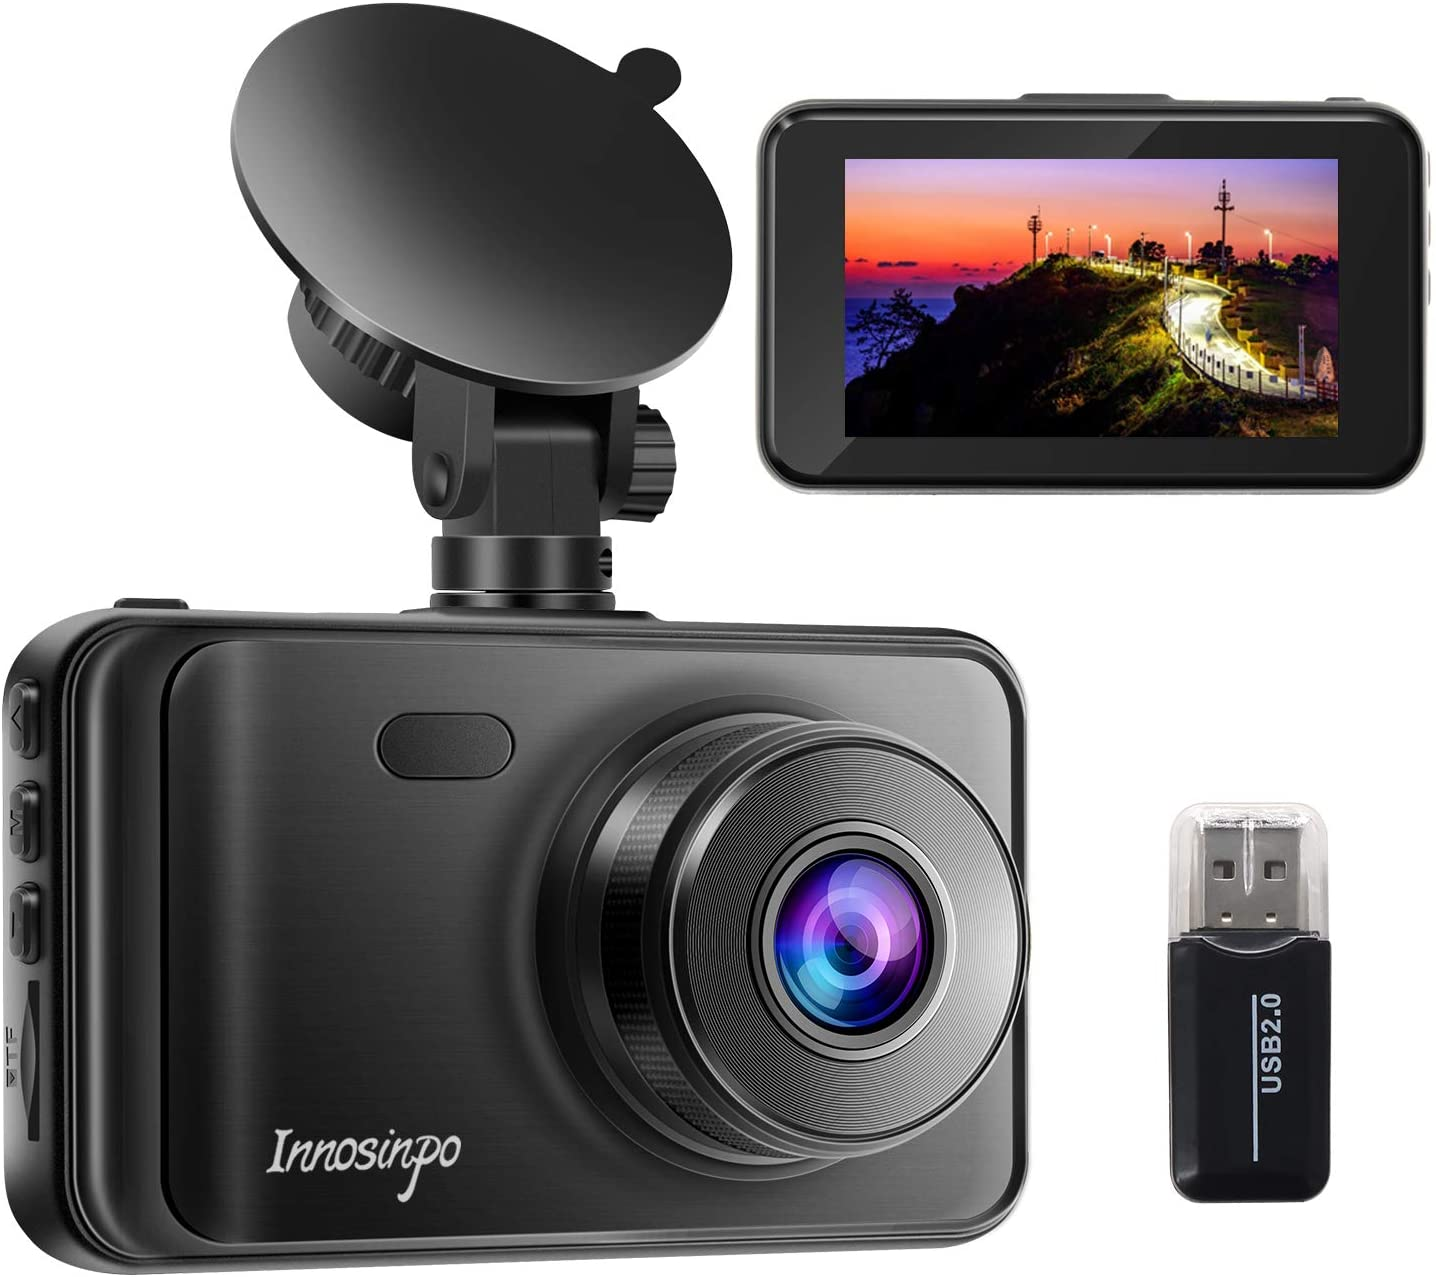 """Dash Cam【2021 New Version】 1080P FHD DVR Car Dashboard Camera Recorder 3"""" LCD Screen 170° Wide Angle, Super Night Vision, G-Sensor, WDR, Parking Monitor, Loop Recording, Motion Detection"""